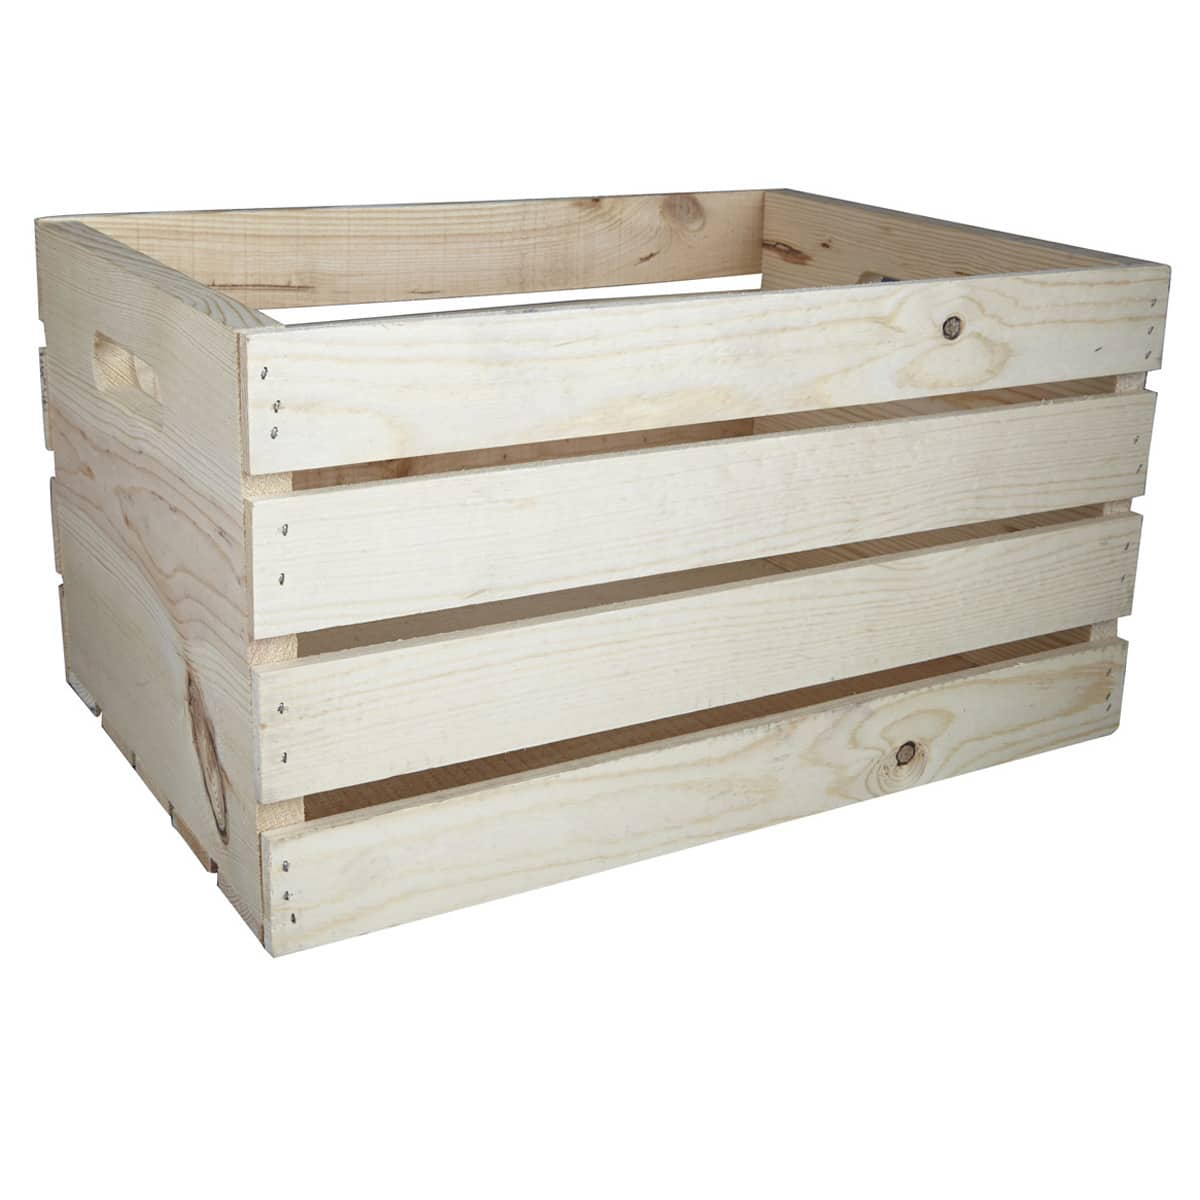 Wood Crate Carry All By Art Minds® by Artminds